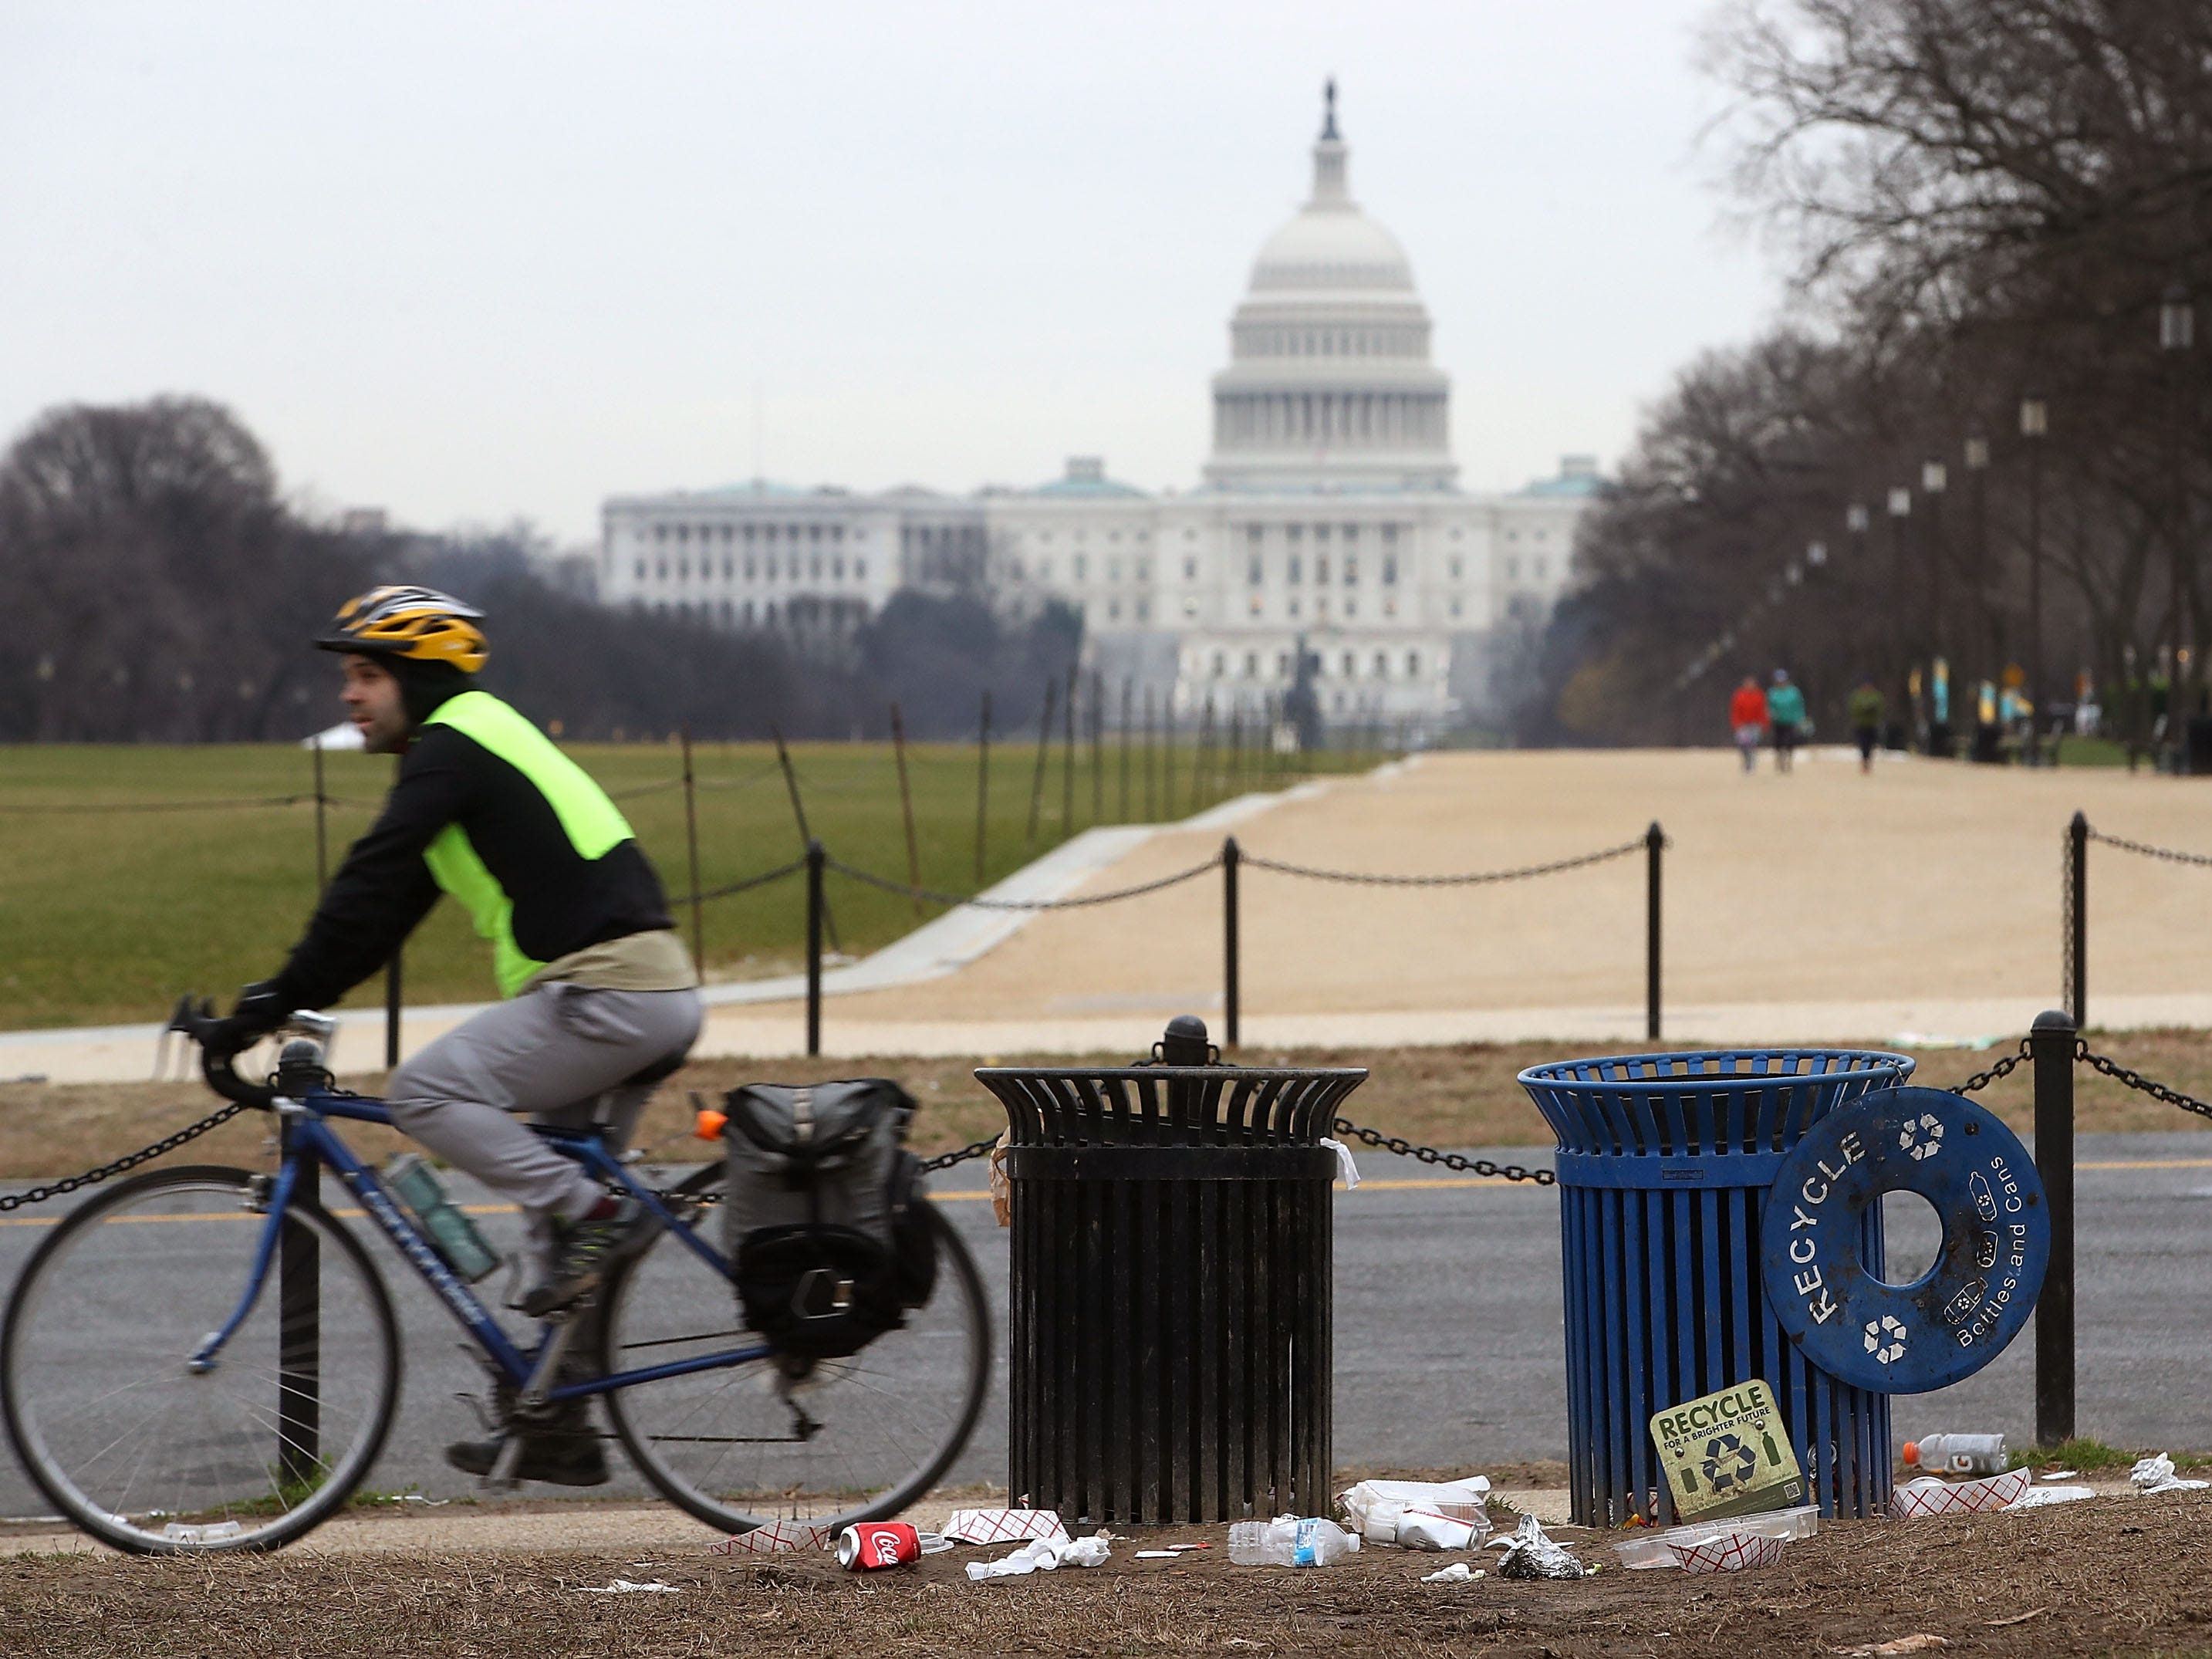 Trash lays on the grounds of the National Mall during the partial shutdown of the U.S. government on Jan. 2, 2019.